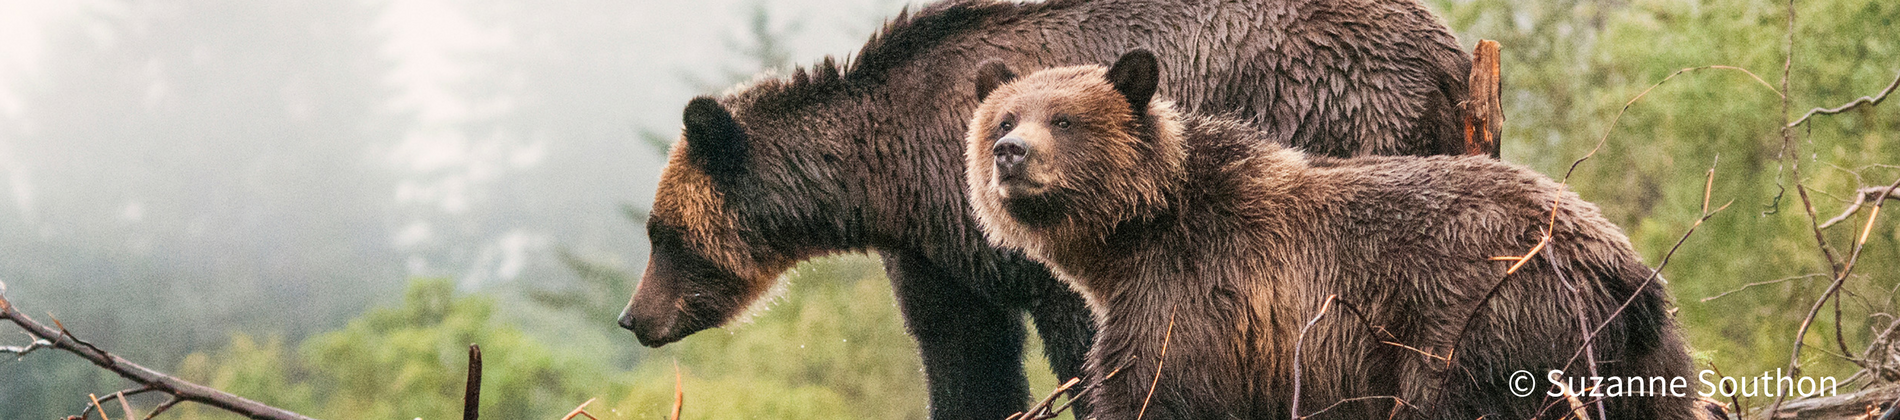 Image of Grizzly Bears by Suzanne Southon